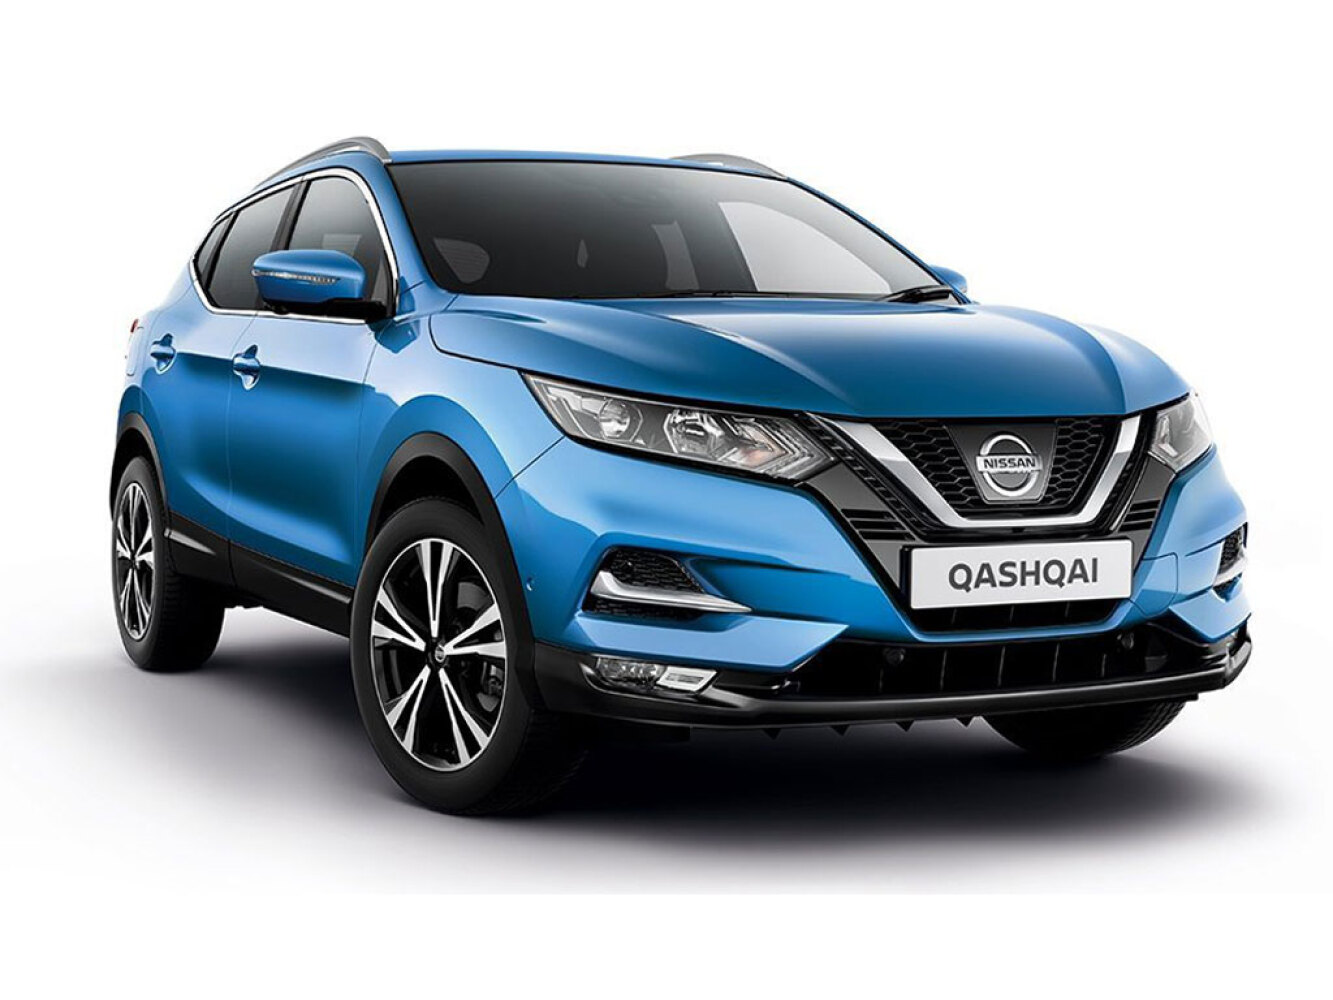 new nissan qashqai 1 5 dci 115 n connecta 5dr diesel hatchback for sale bristol street. Black Bedroom Furniture Sets. Home Design Ideas